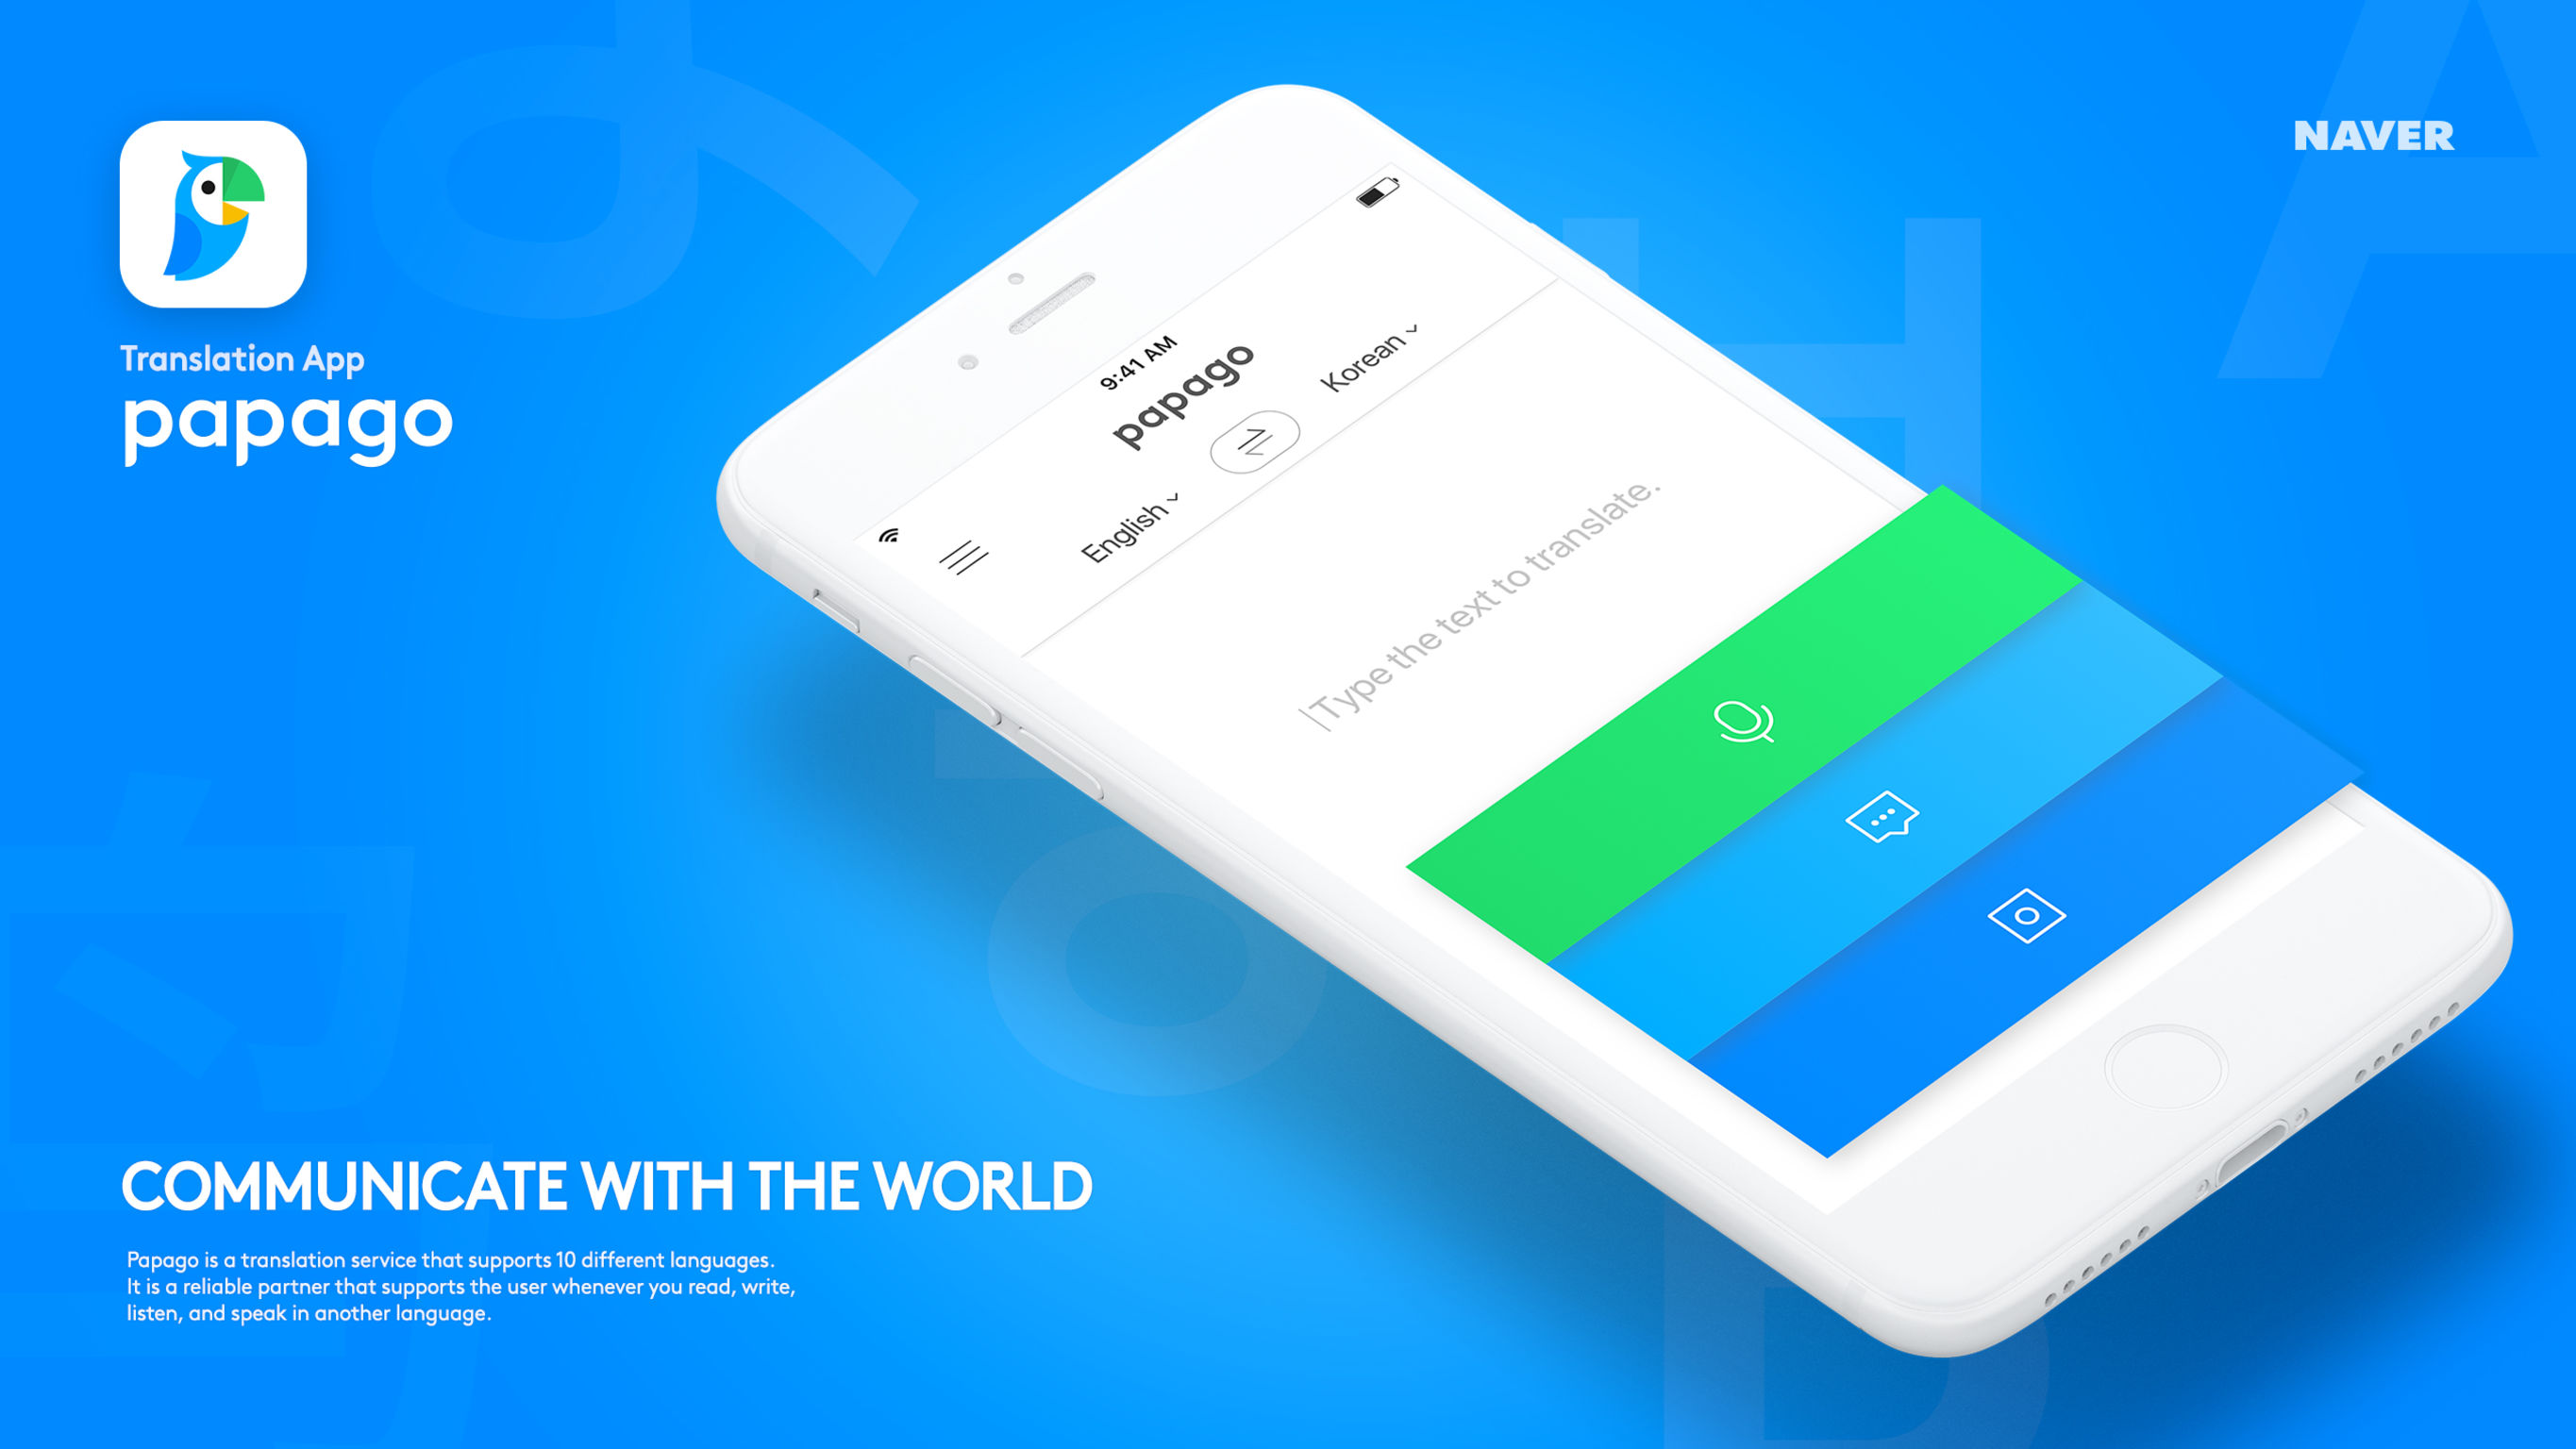 Papago (Translate App) | iF WORLD DESIGN GUIDE